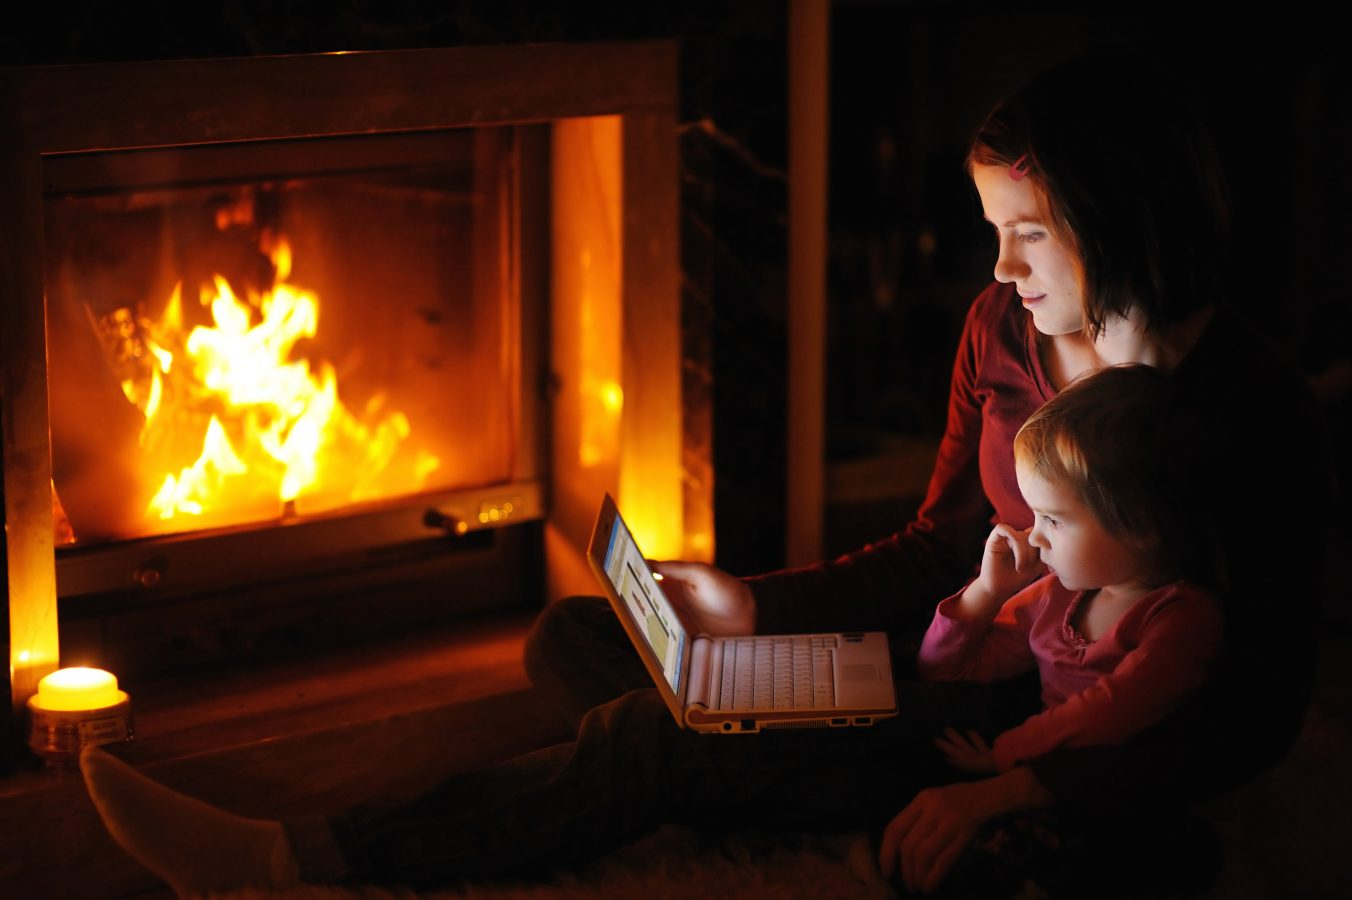 Carbon monoxide from fireplace needs detectors